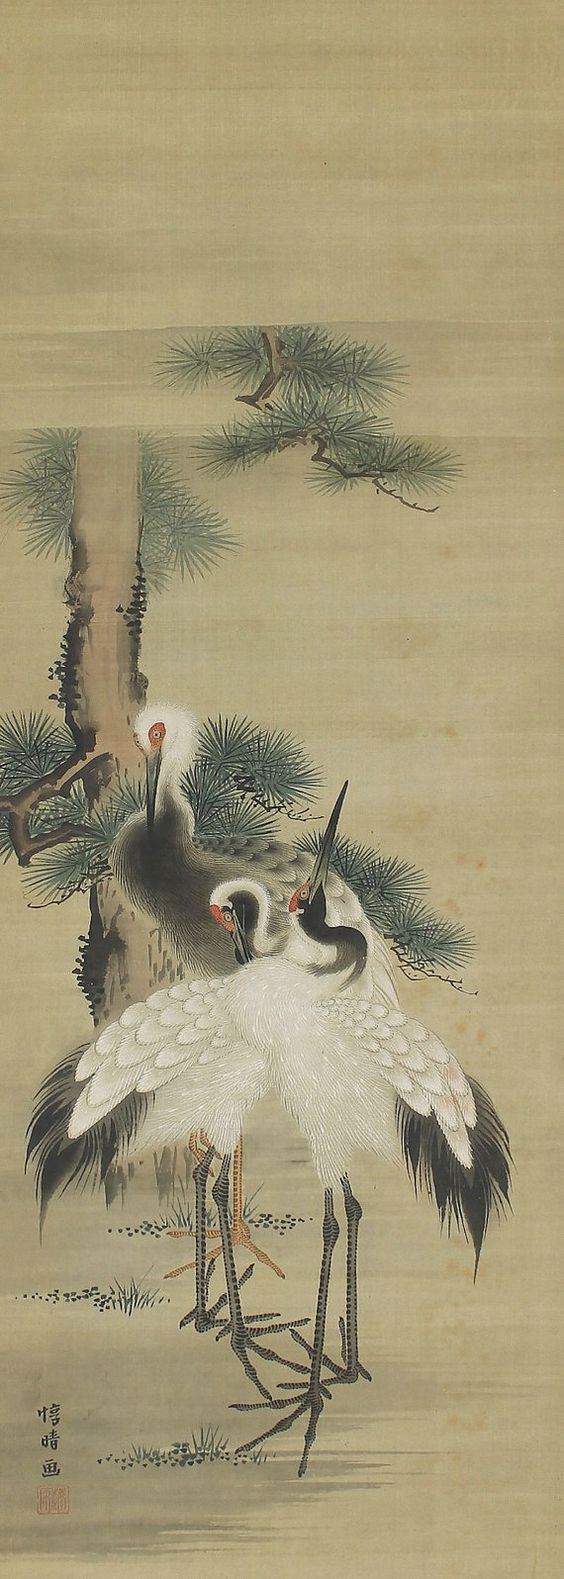 Crane in Pines. Japanese Hanging Scroll Painting ... - photo#31